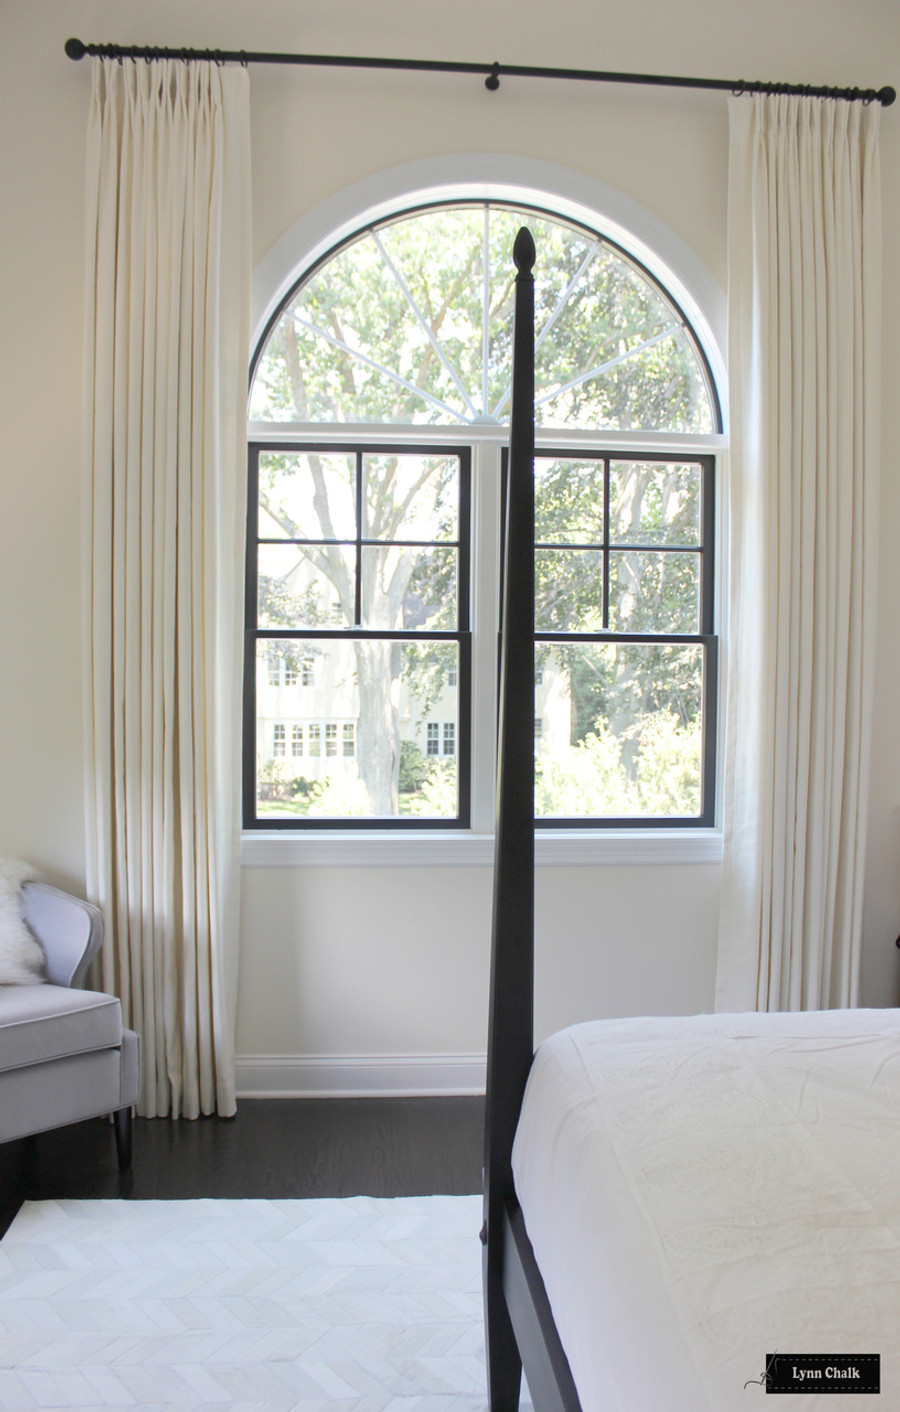 Trend 01838T Coconut (2 1/2 Widths at 125 inches long).  Hardware is Aria Abode Collection in Matte Black.